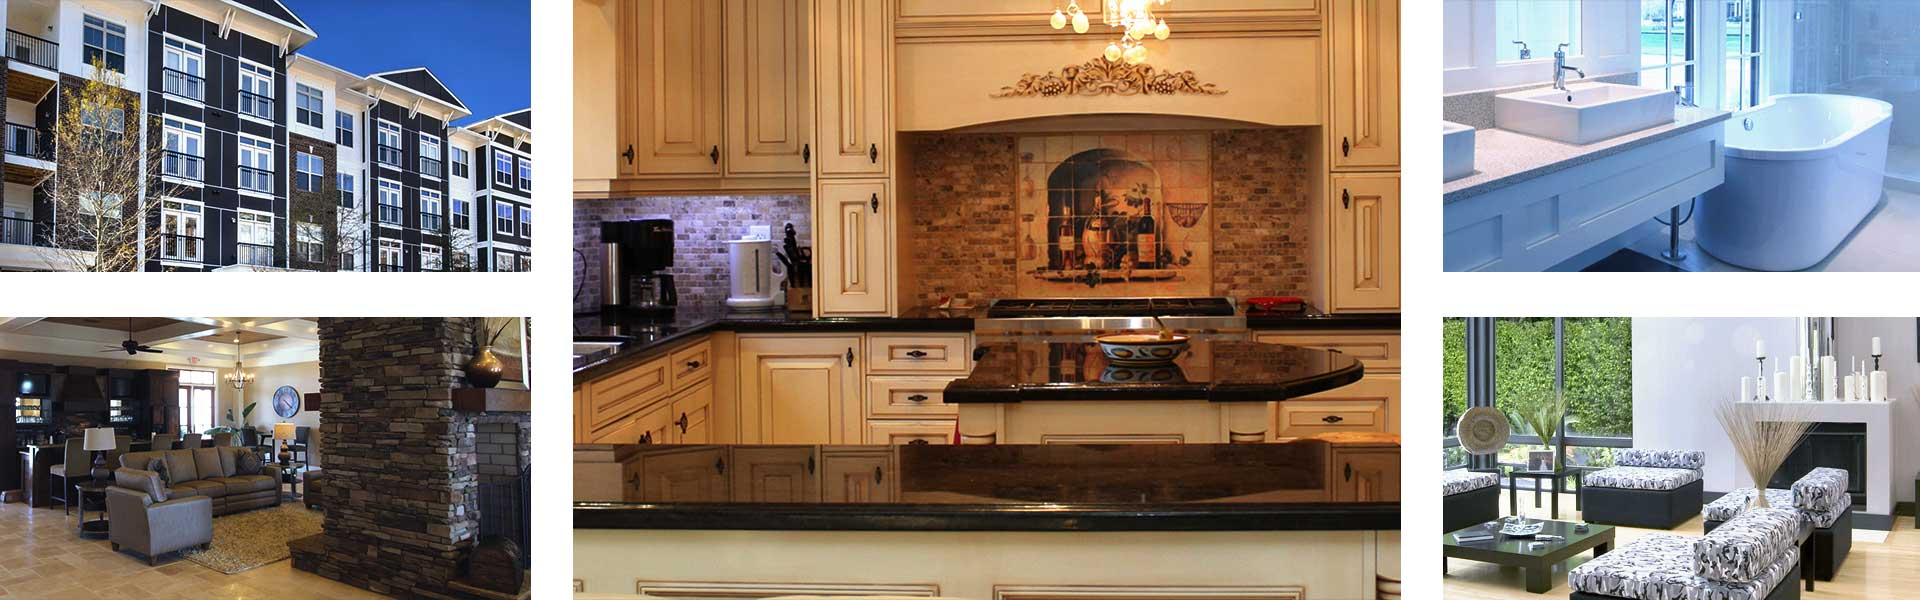 Kitchen design remodeling contractors near me avatar for Kitchen designers near me